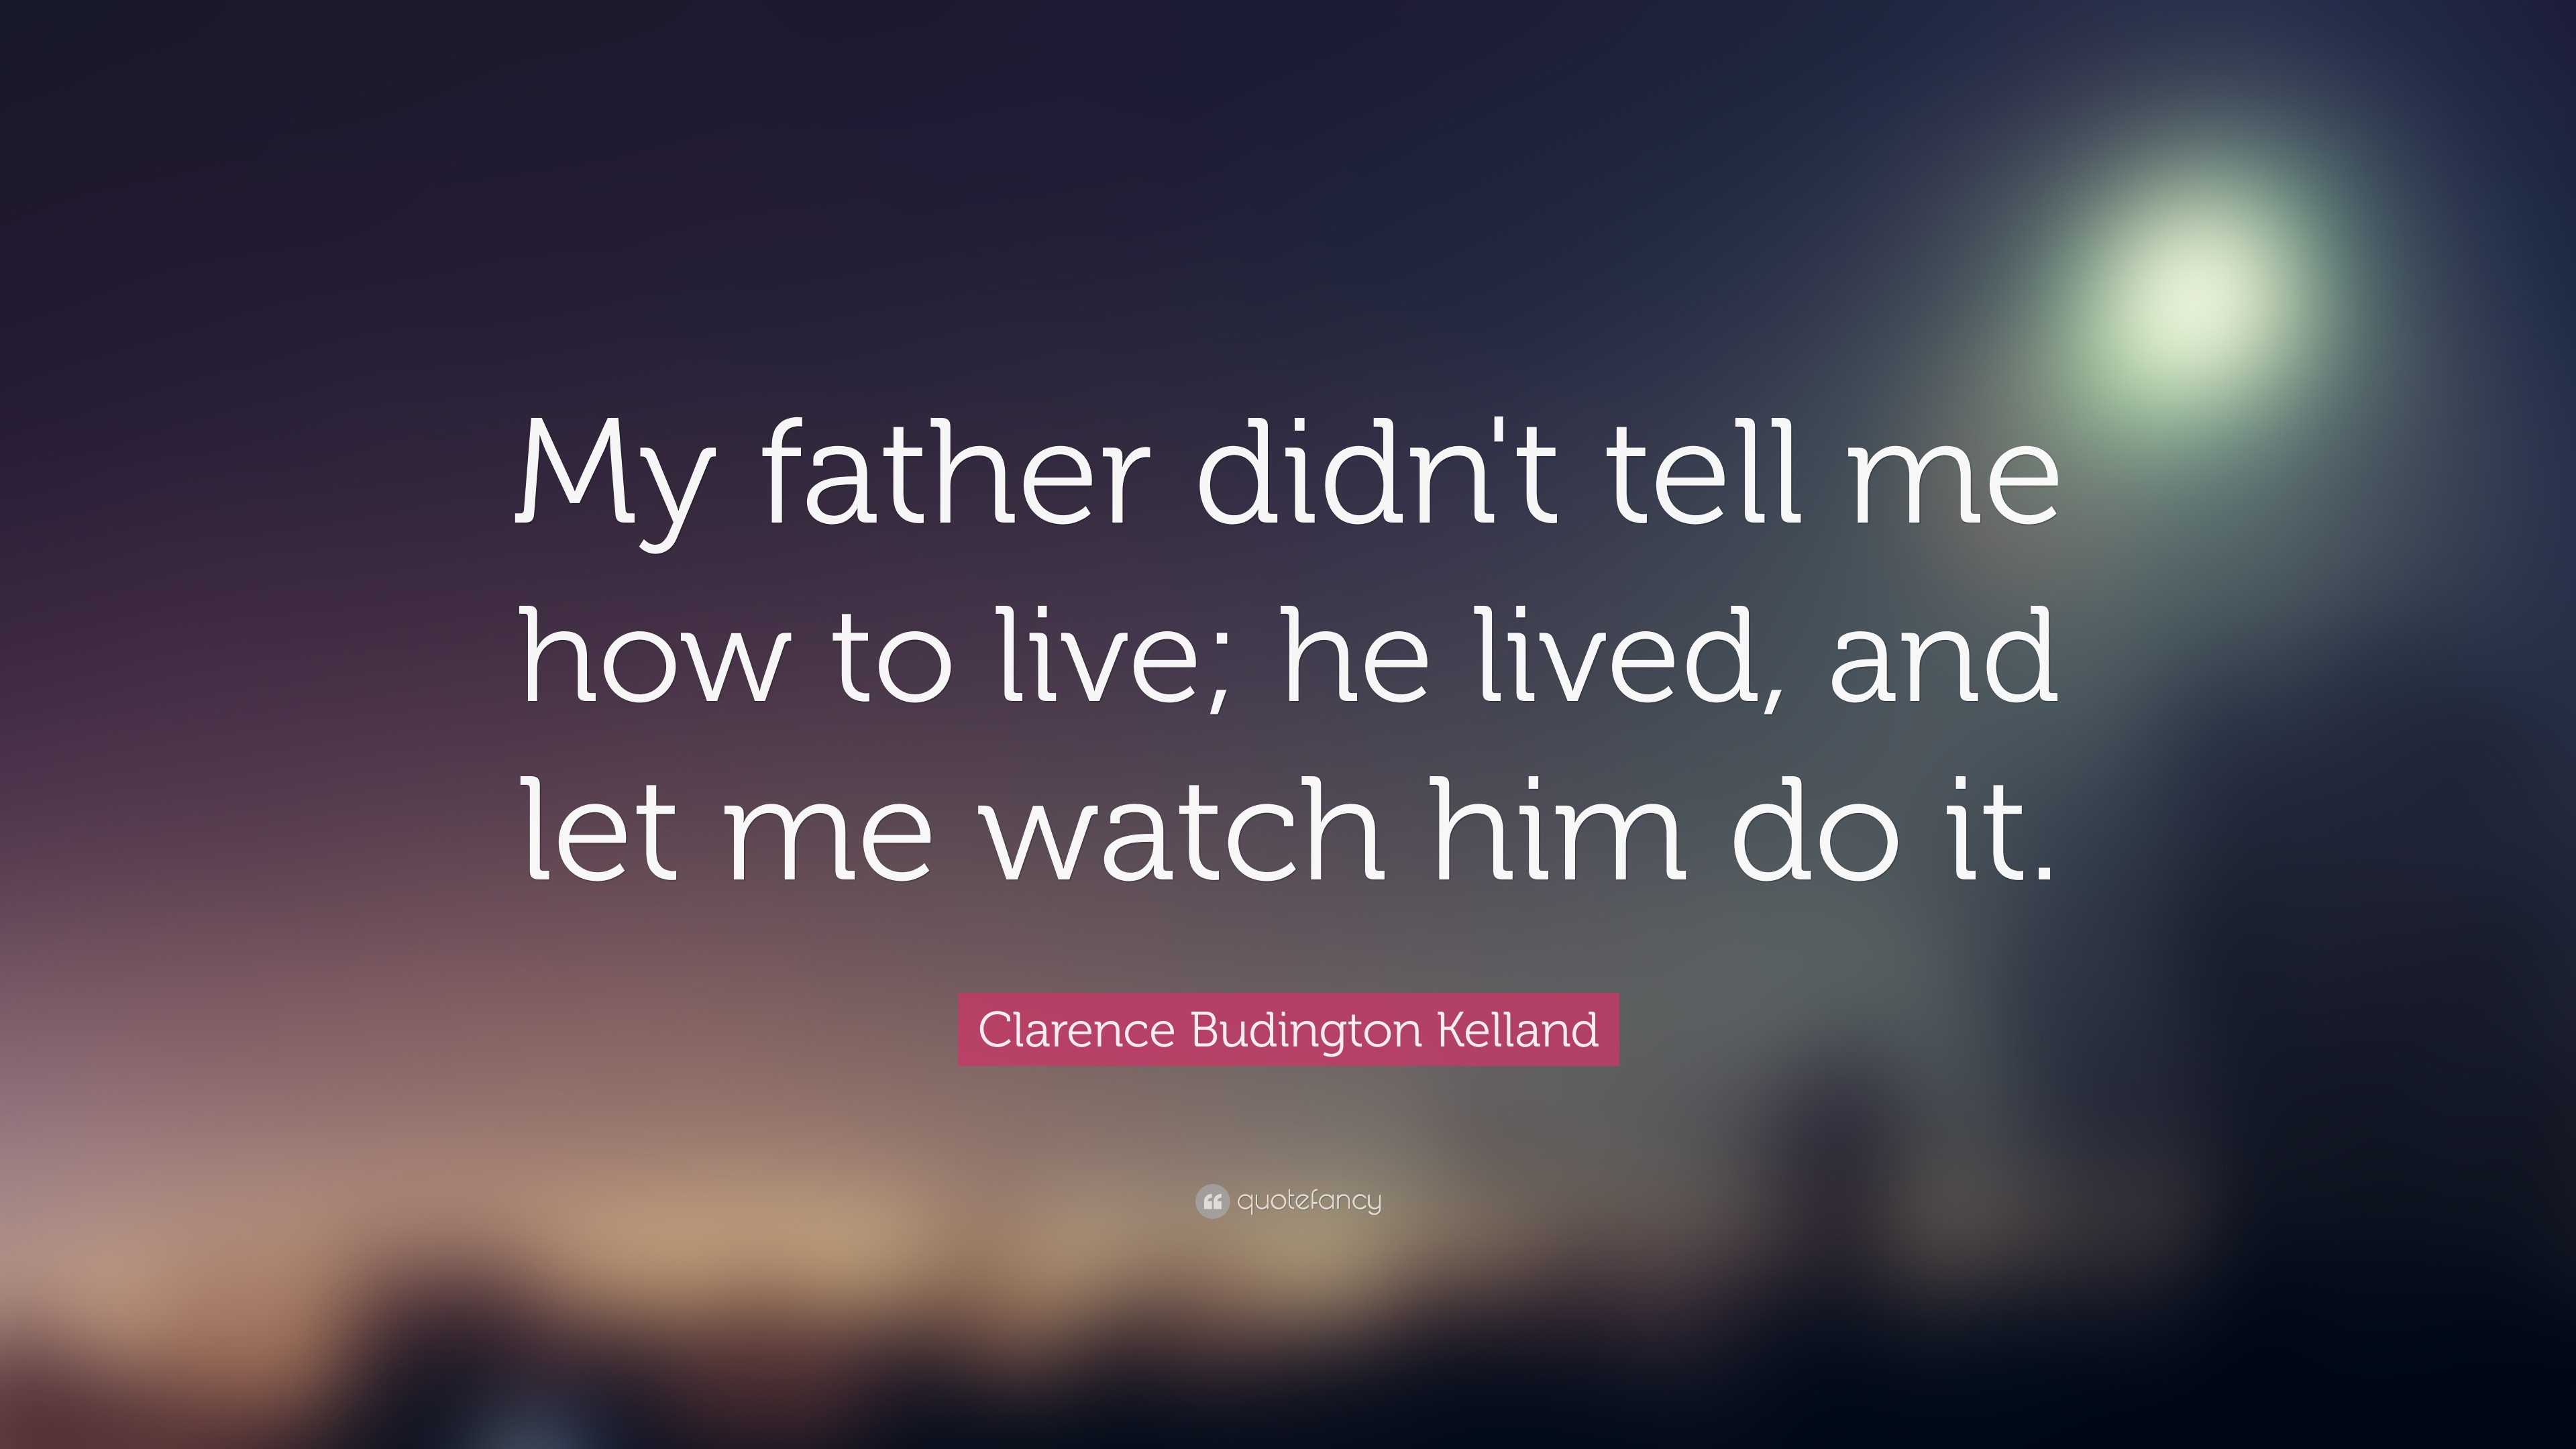 Sayings Fathers Day Quotes my Father Didnt Tell Me How To Live Dgreetings Fathers Day Quotes 26 Wallpapers Quotefancy